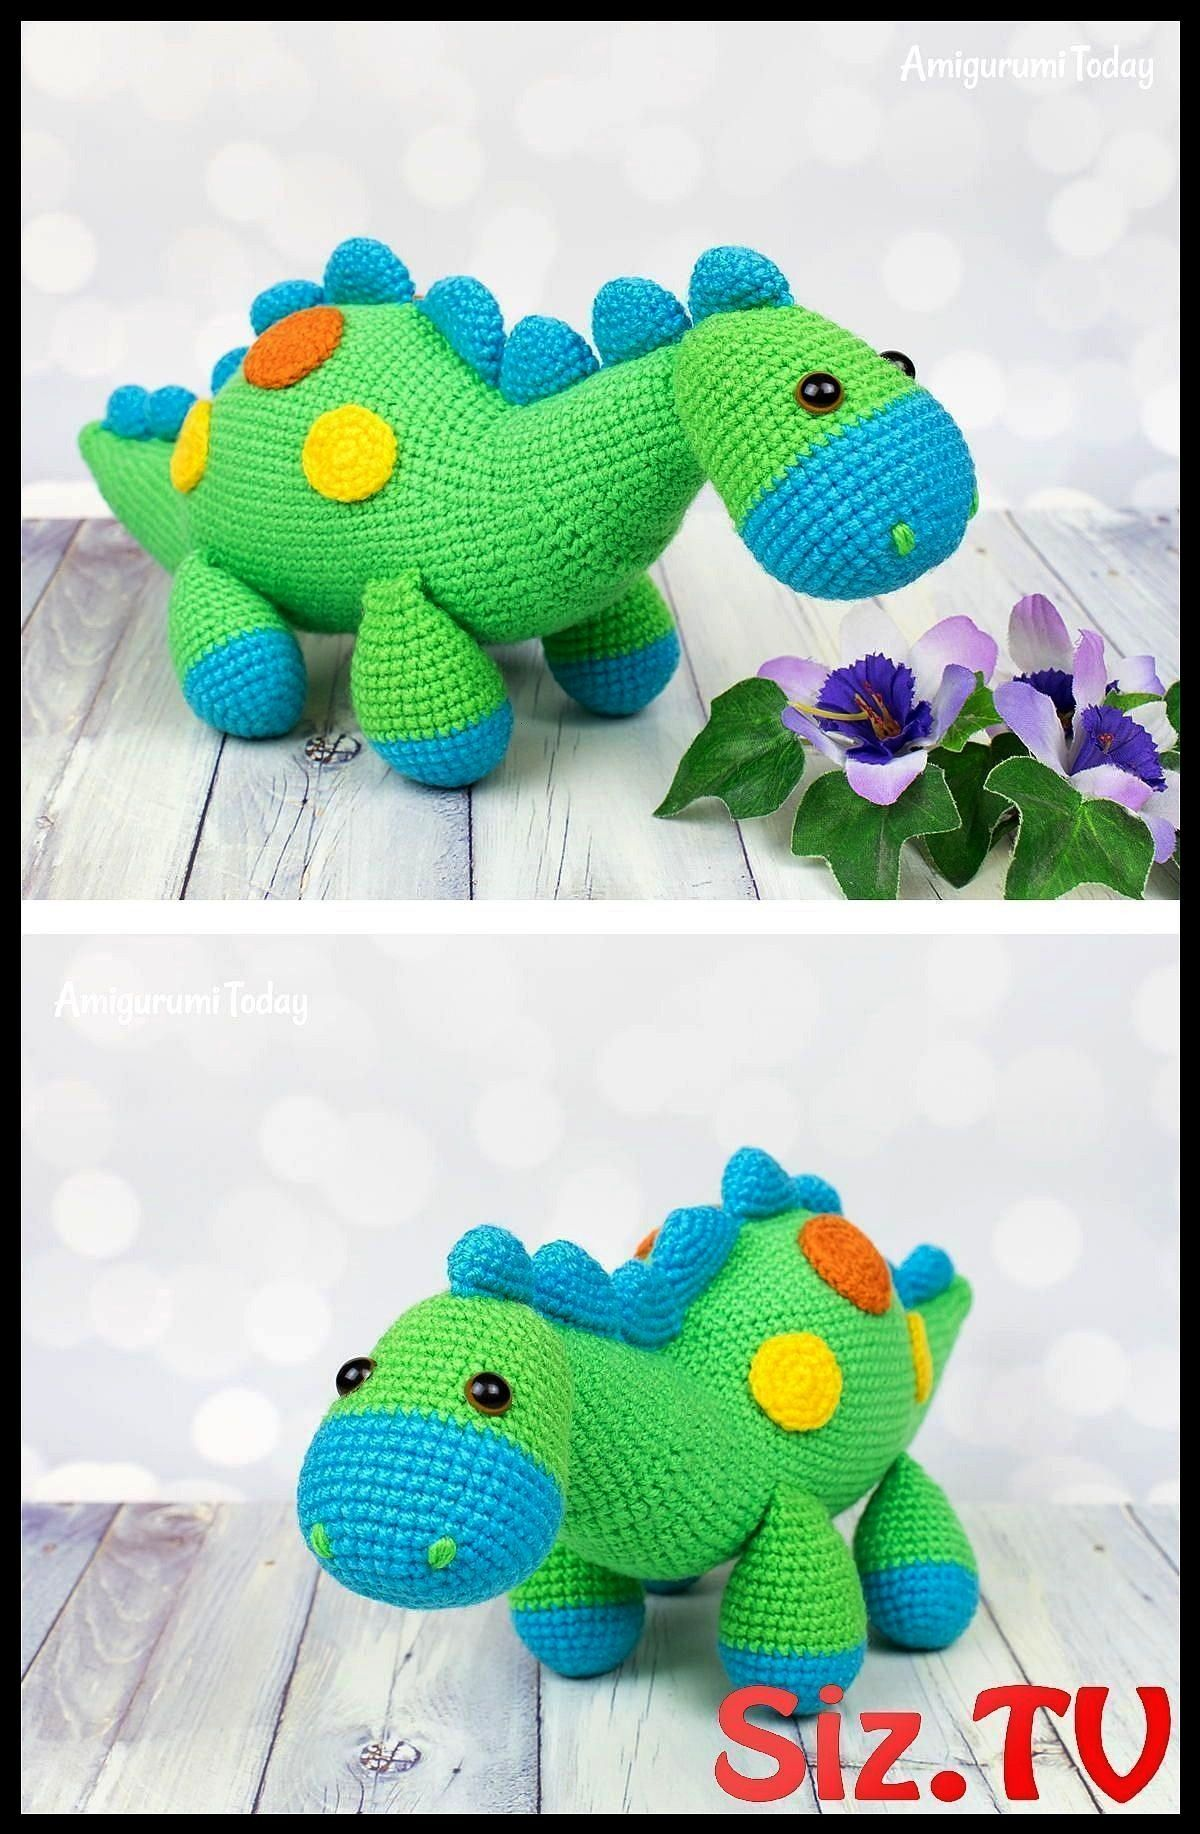 Dinosaur Crochet Pattern Amigurumi Dinosaur Crochet Pattern Are You On The Hunt For A Cute Amigurumi Dinosaur Pattern Our Crochet Dinosaur C Amigurumi Dinosaur Crochet Pa...